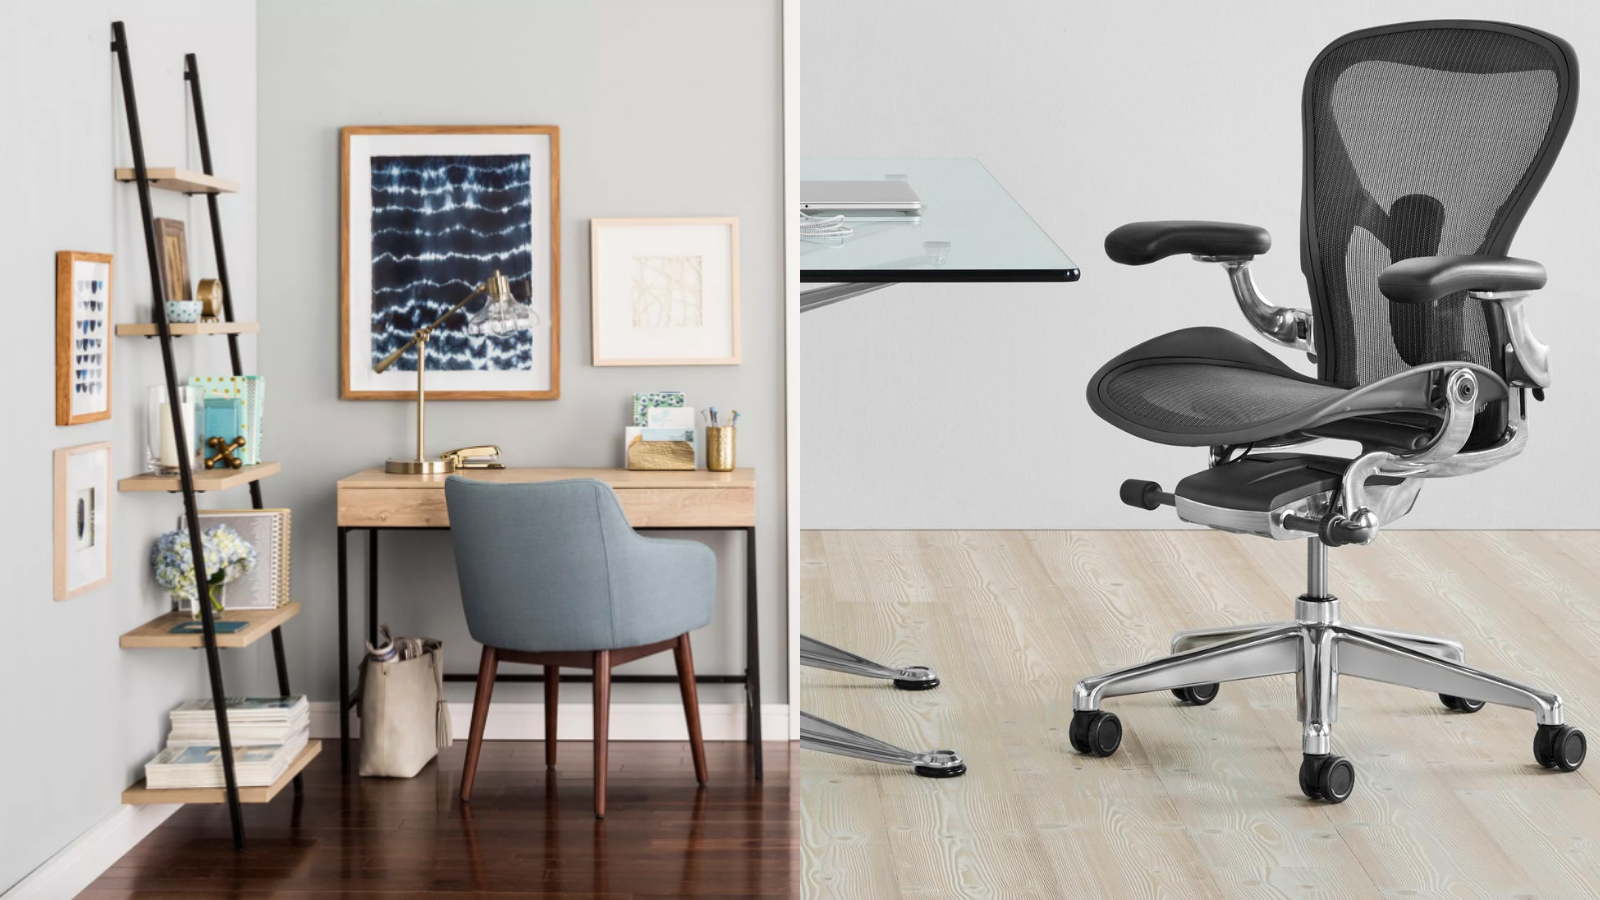 Where To Buy Desks And Desk Chairs Amazon Home Depot Target And More